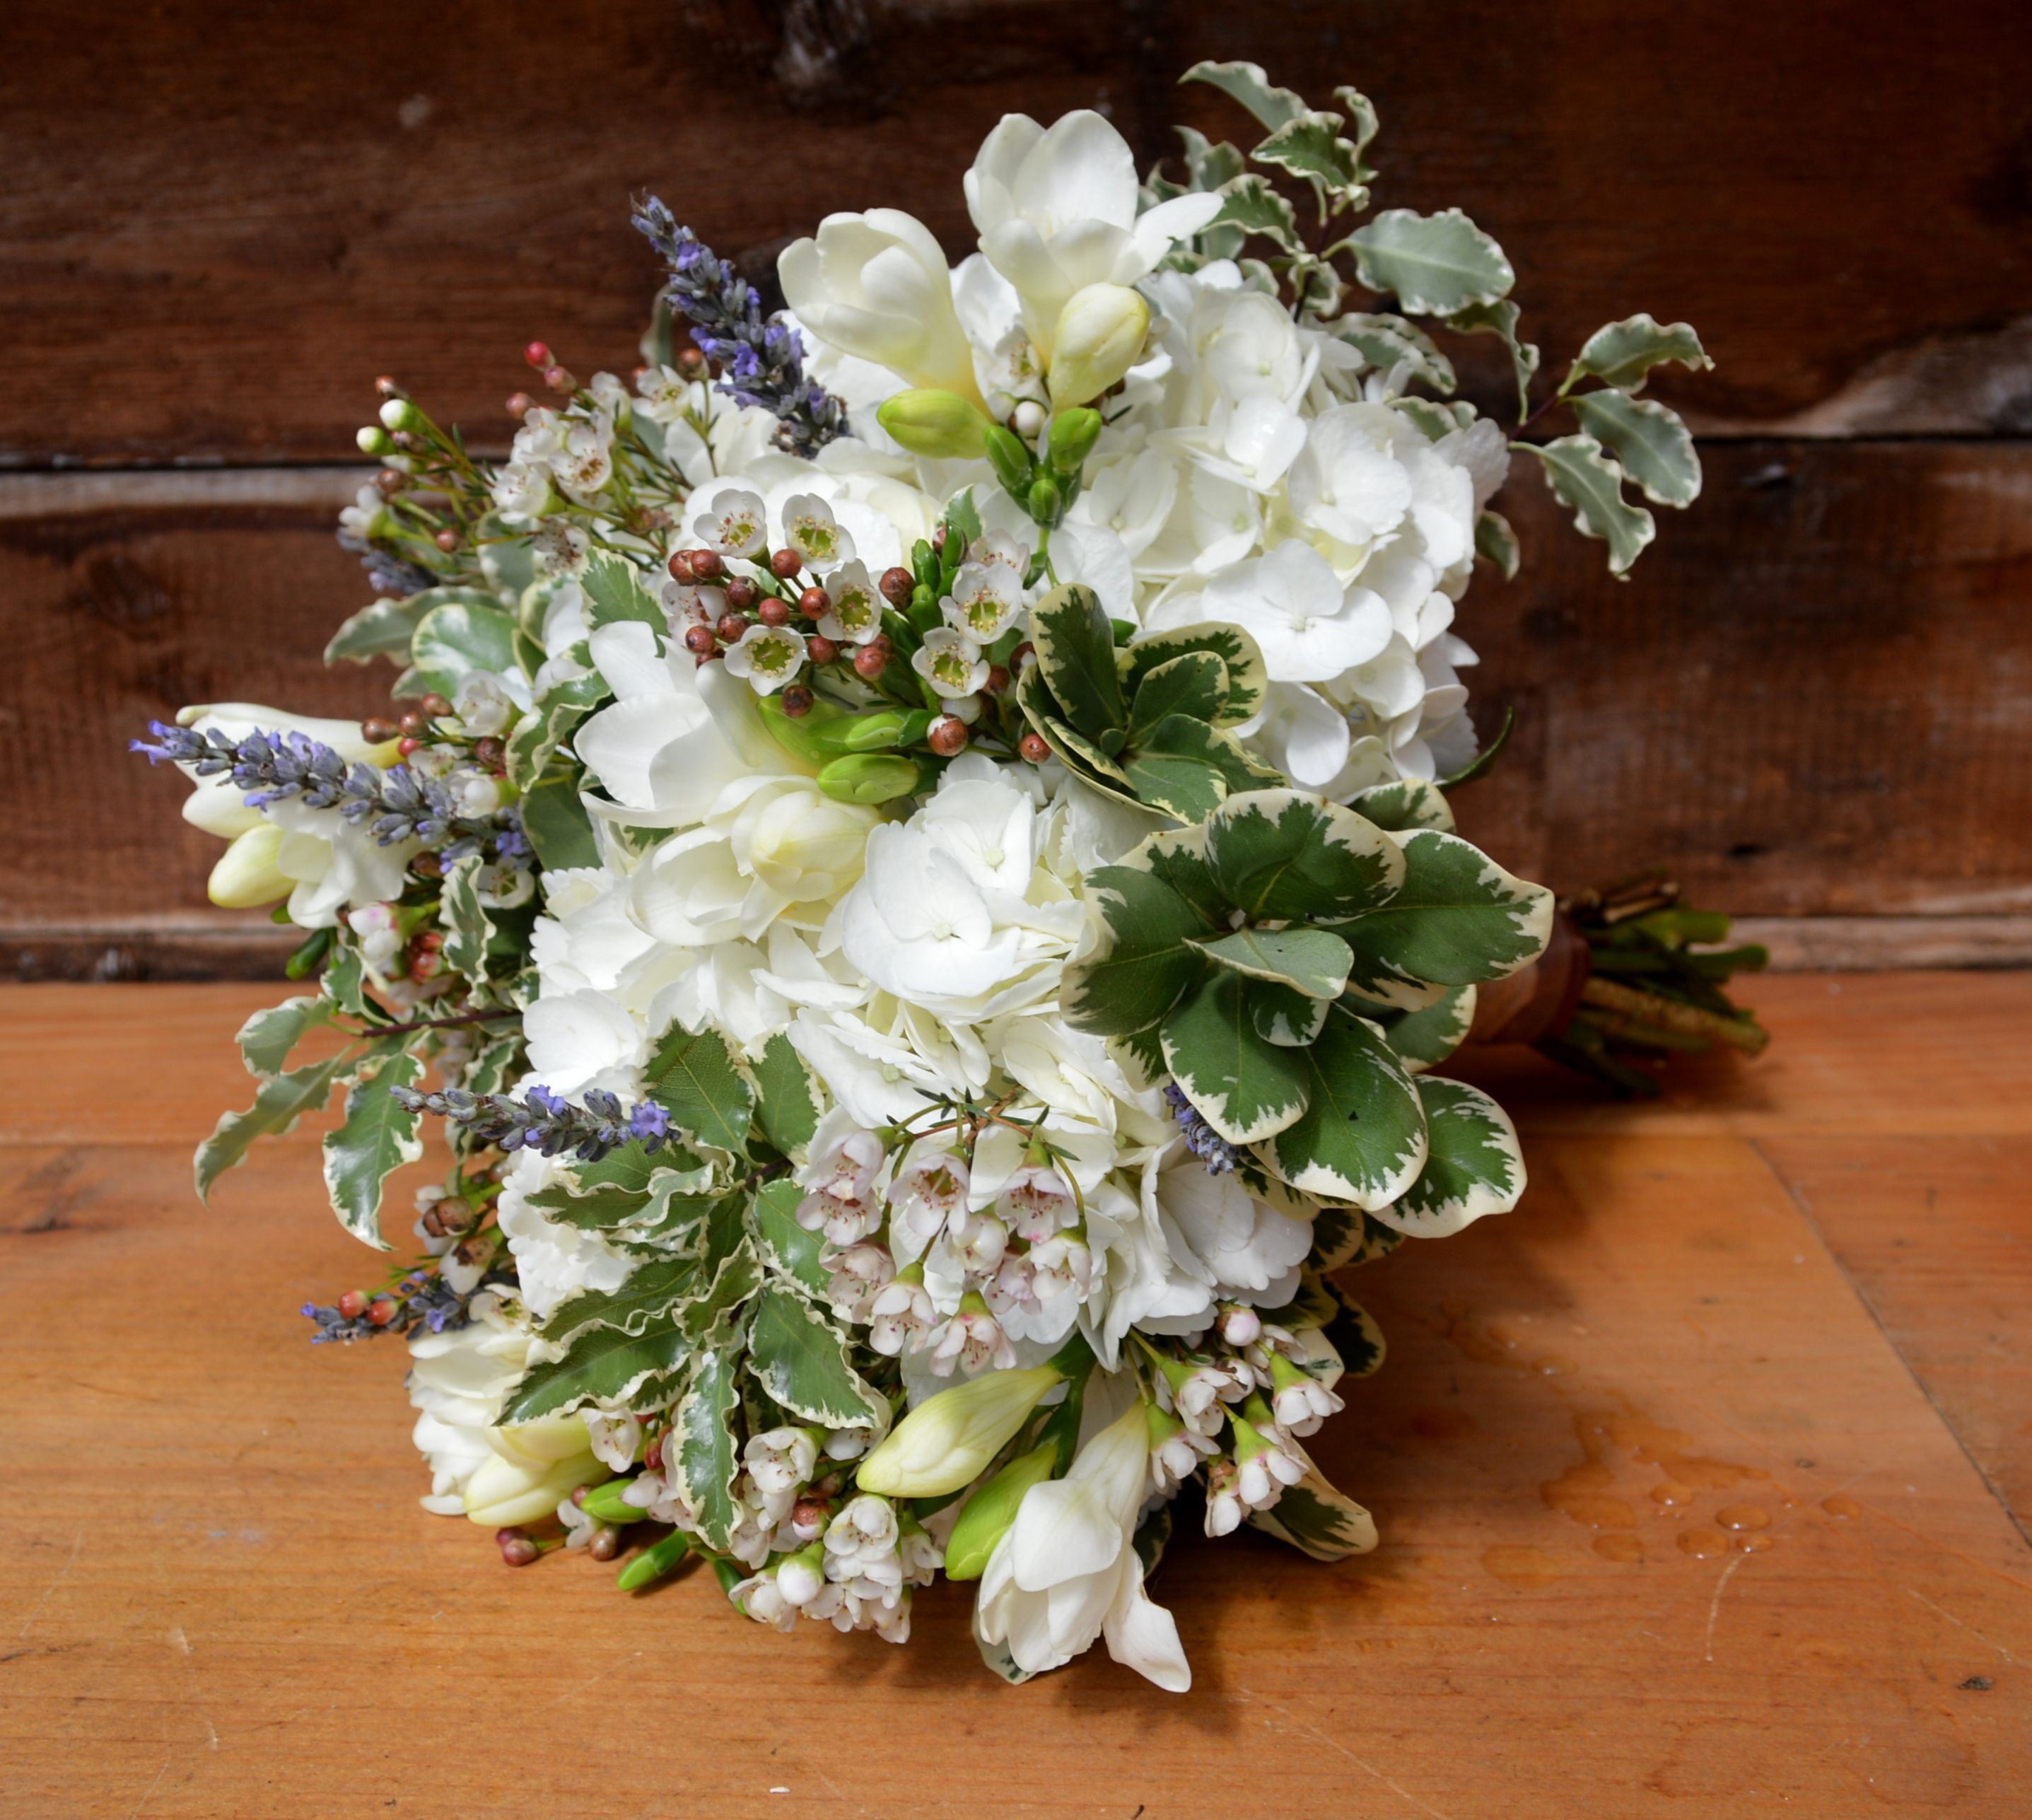 Rustic wildflower bridal bouquet including white hydrangea white rustic wildflower bridal bouquet including white hydrangea white freesia lavender and wax flower izmirmasajfo Gallery